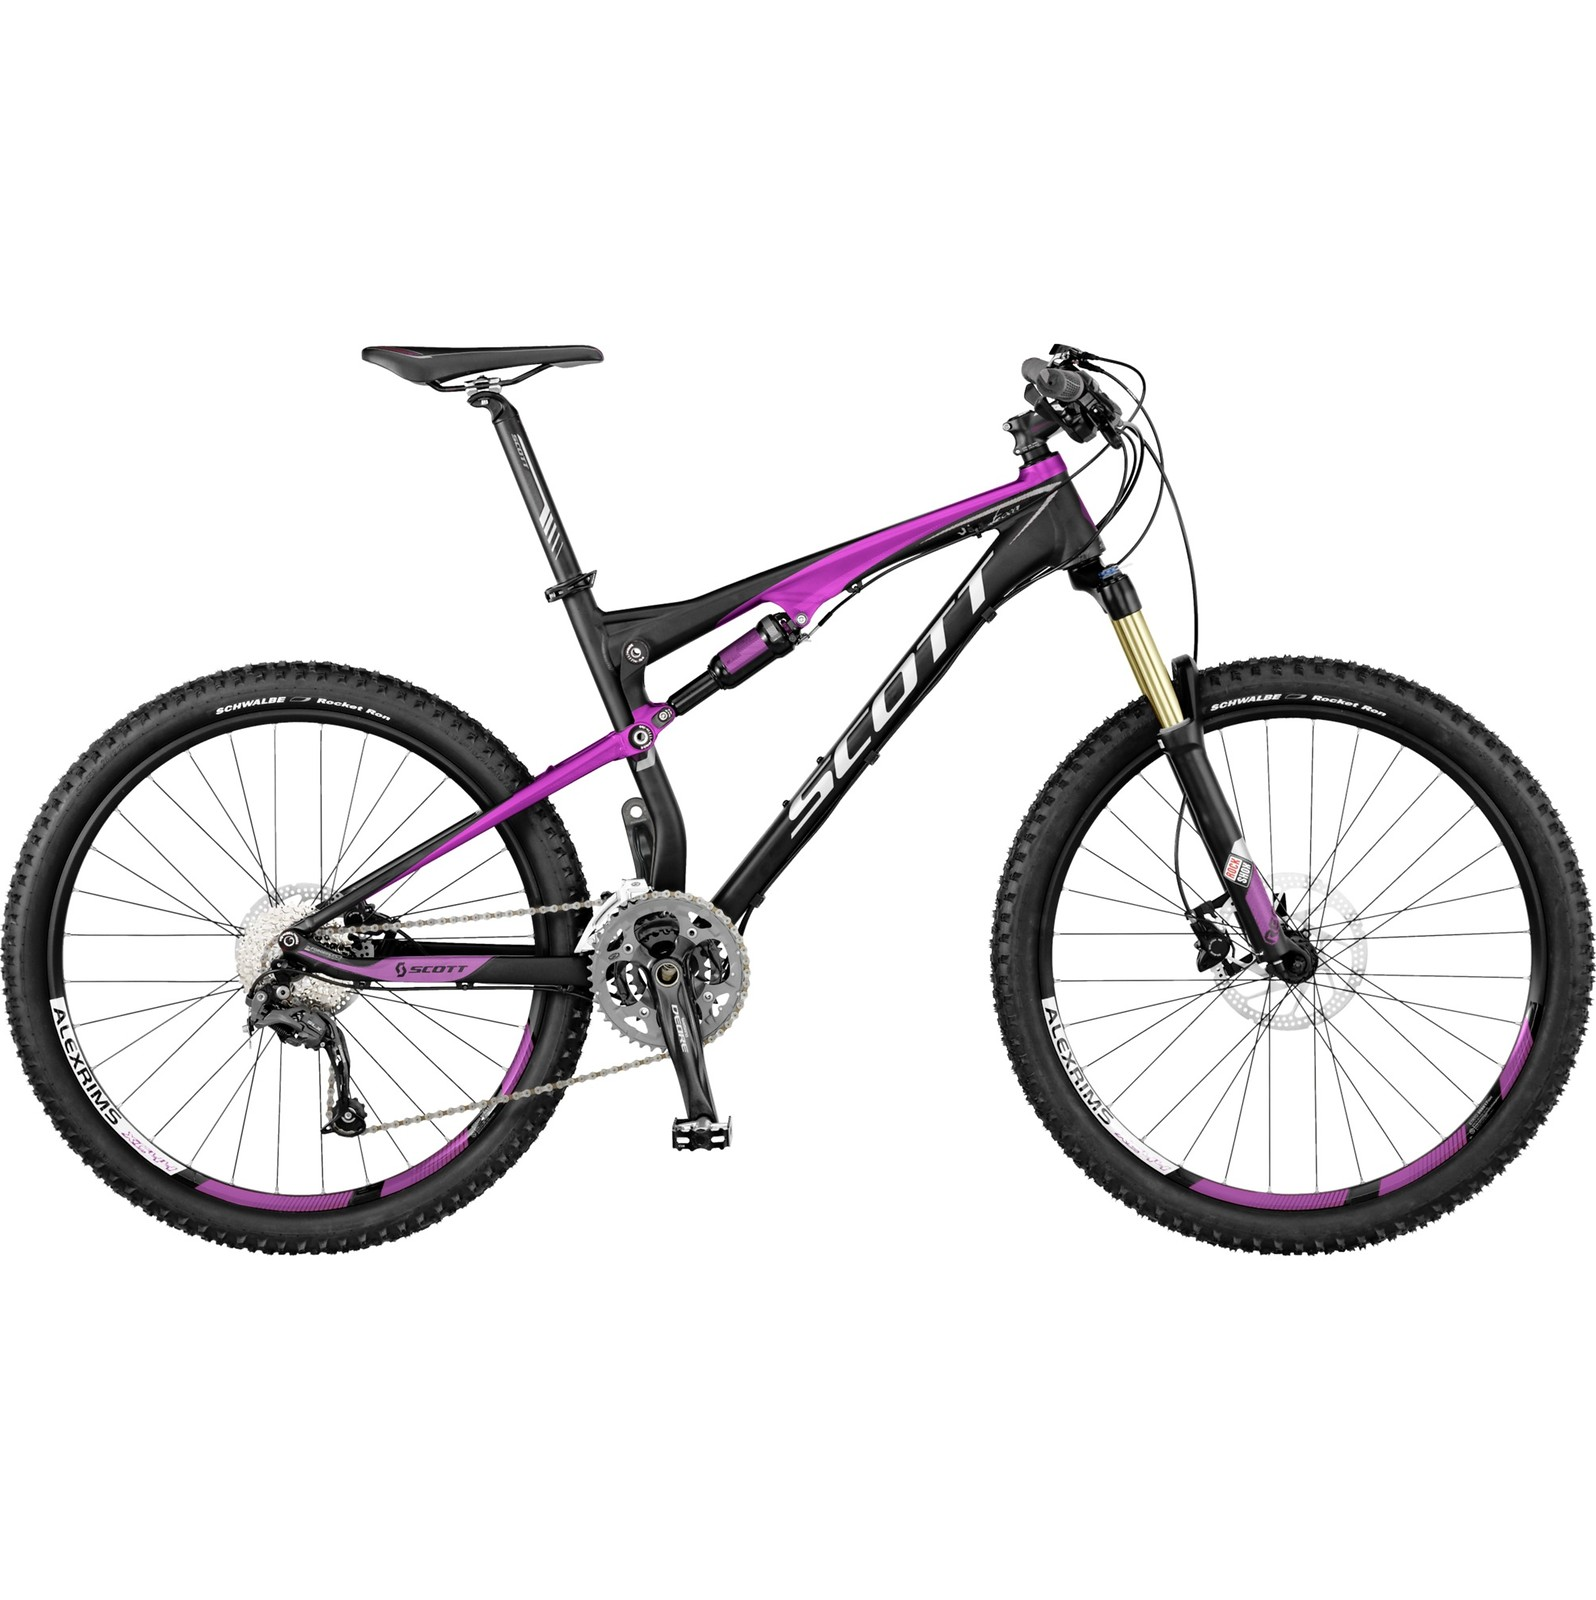 2012 Scott Contessa Spark (Womens) Bike 221780